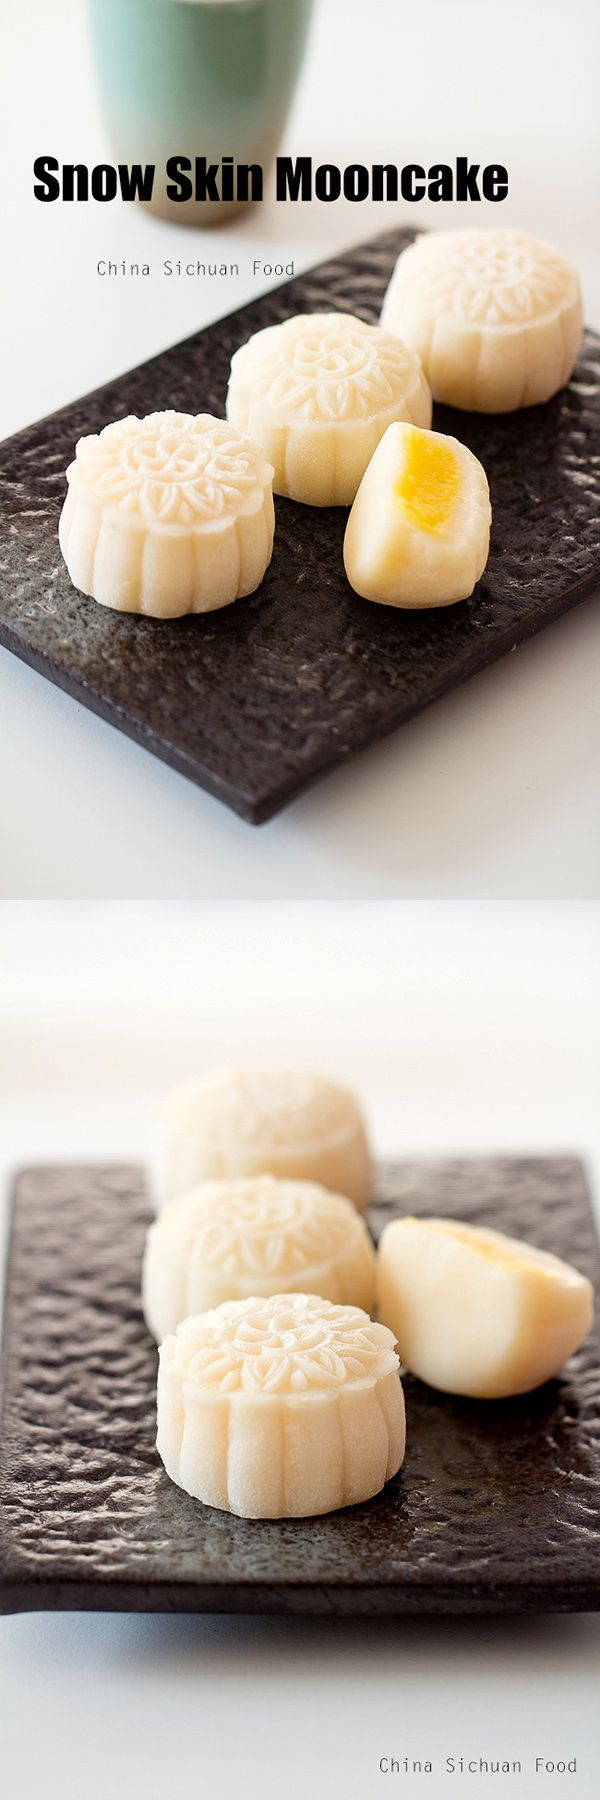 878 best chinese food images on pinterest cook chinese food and snow skin mooncake video recipe with custard filling chinese food forumfinder Image collections